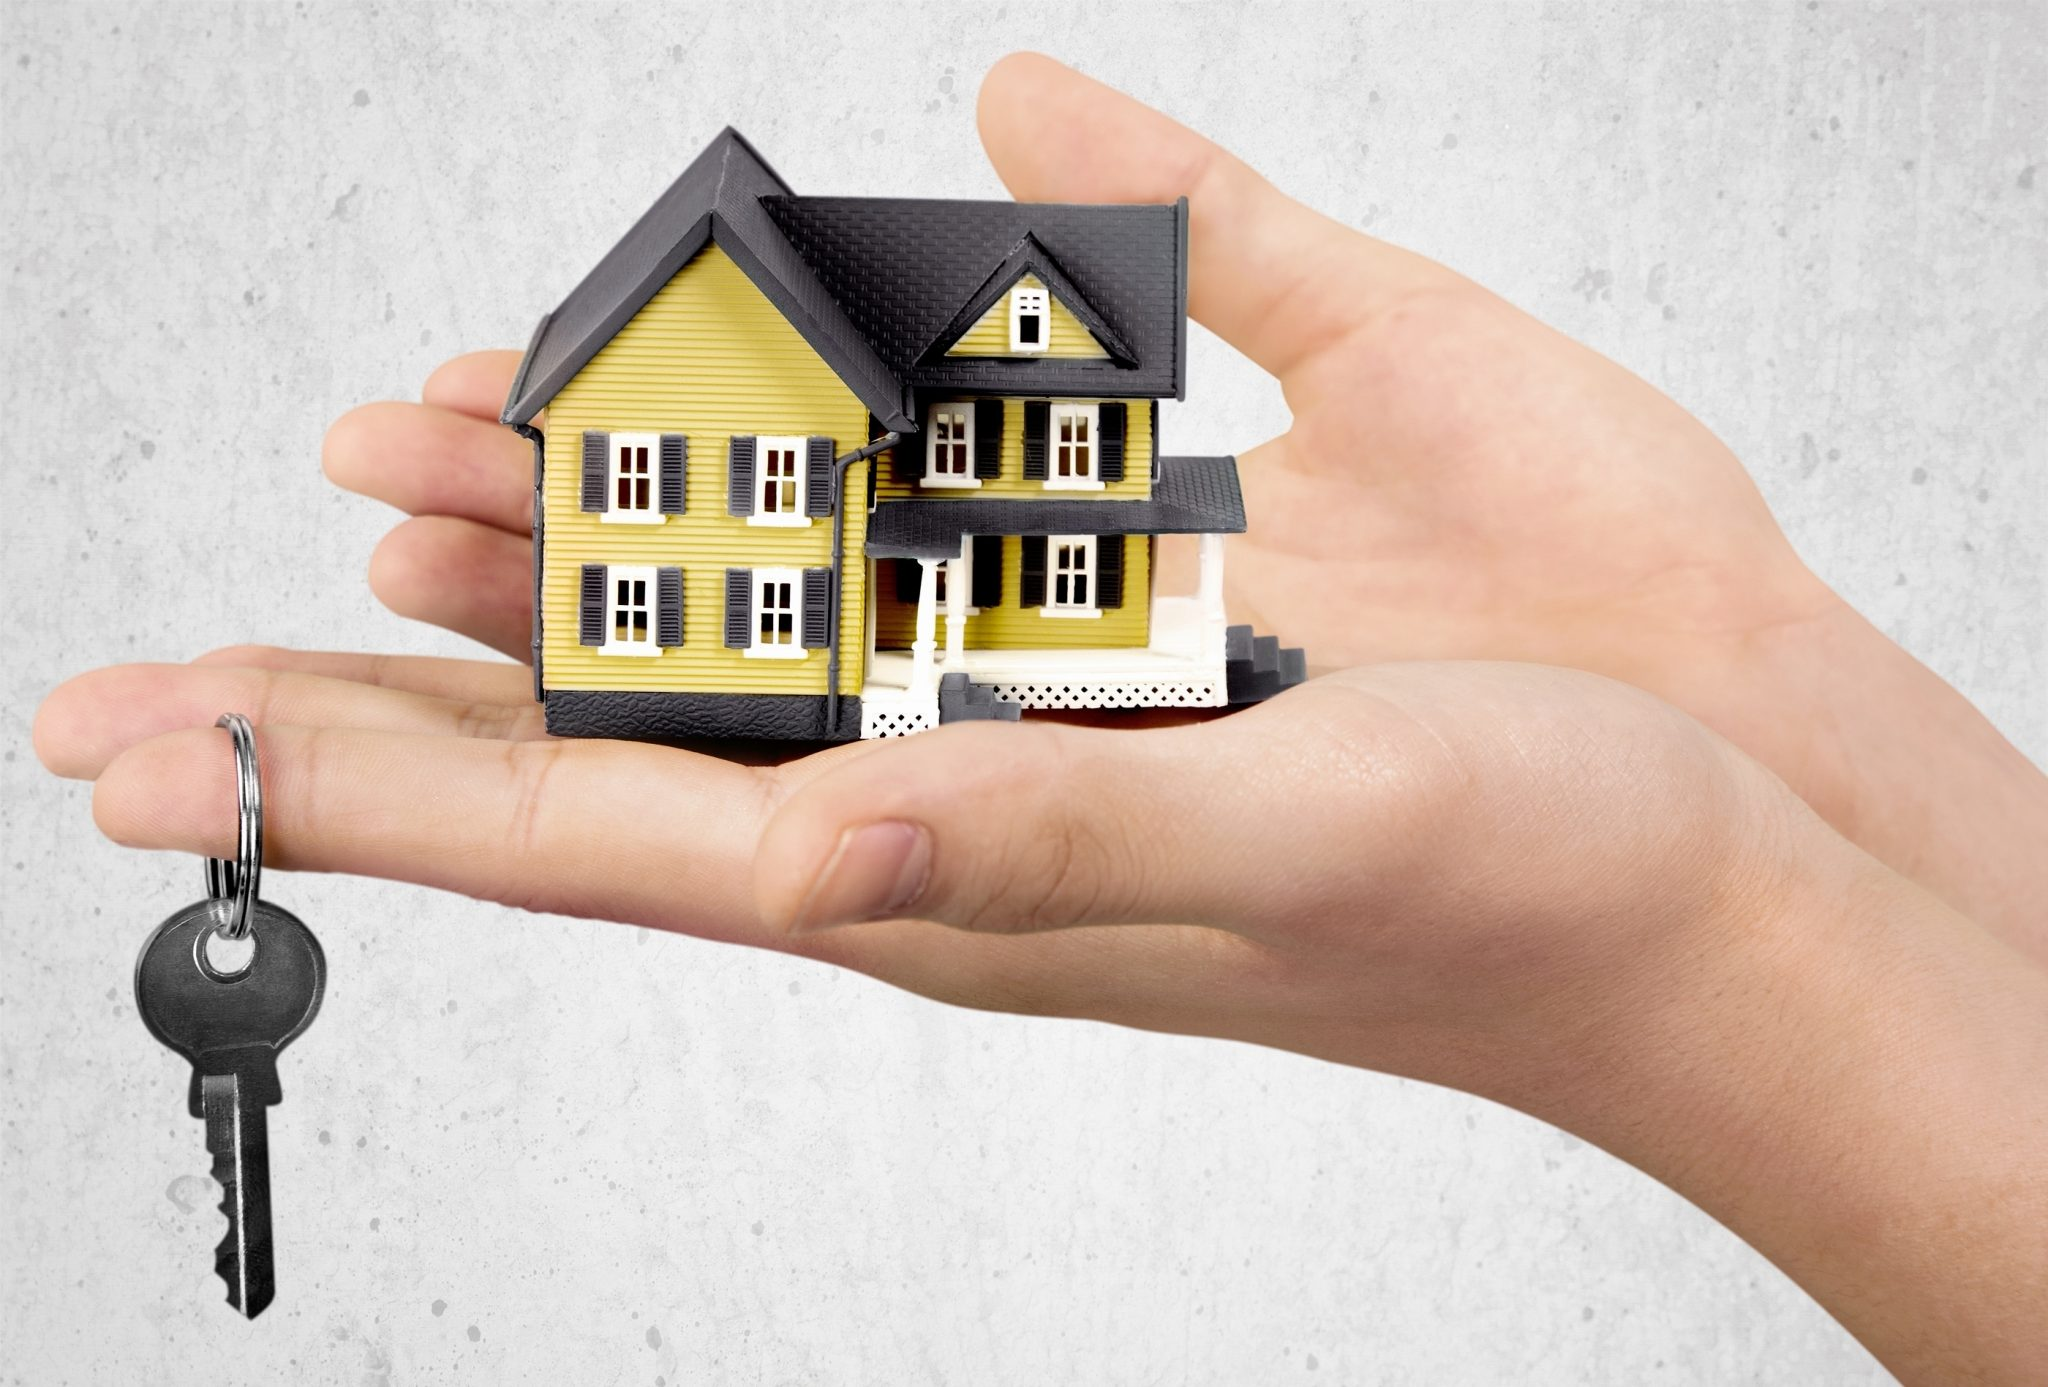 Buying house selling house House Home Interior Residential Structure